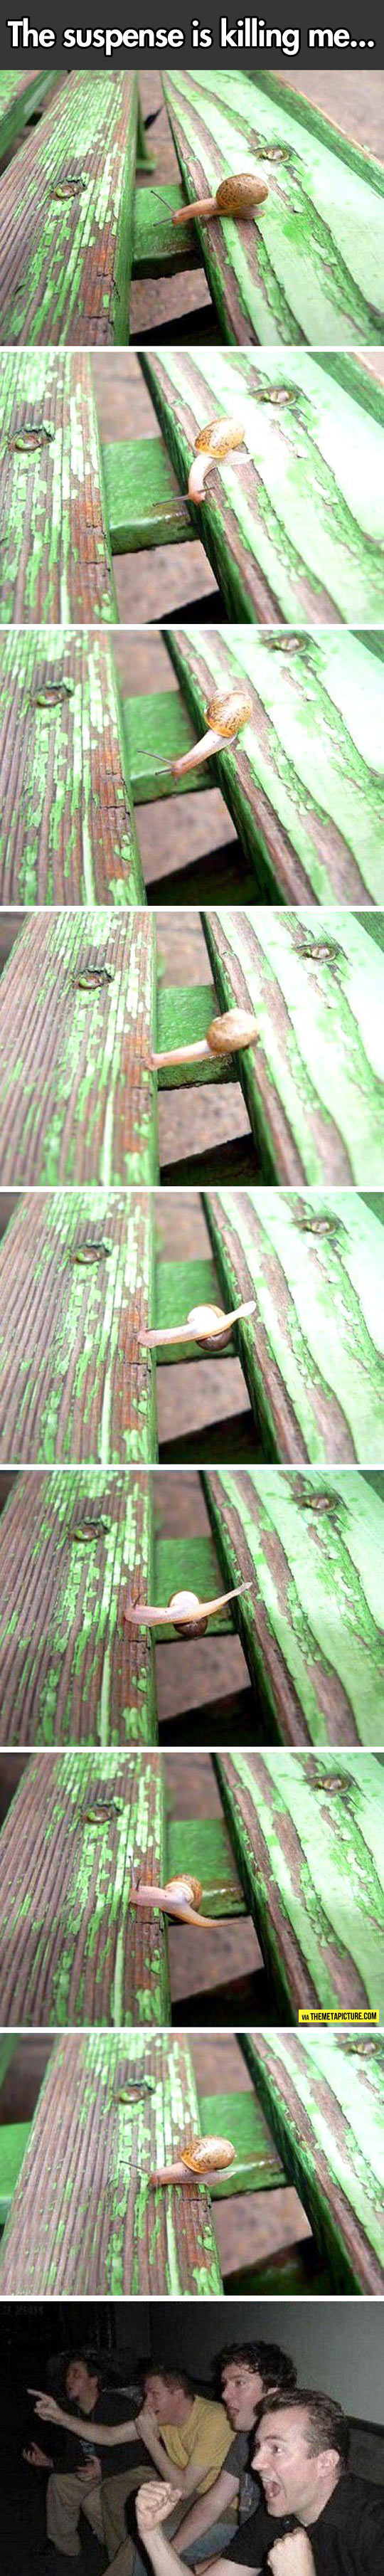 This Snail Loves Parkour